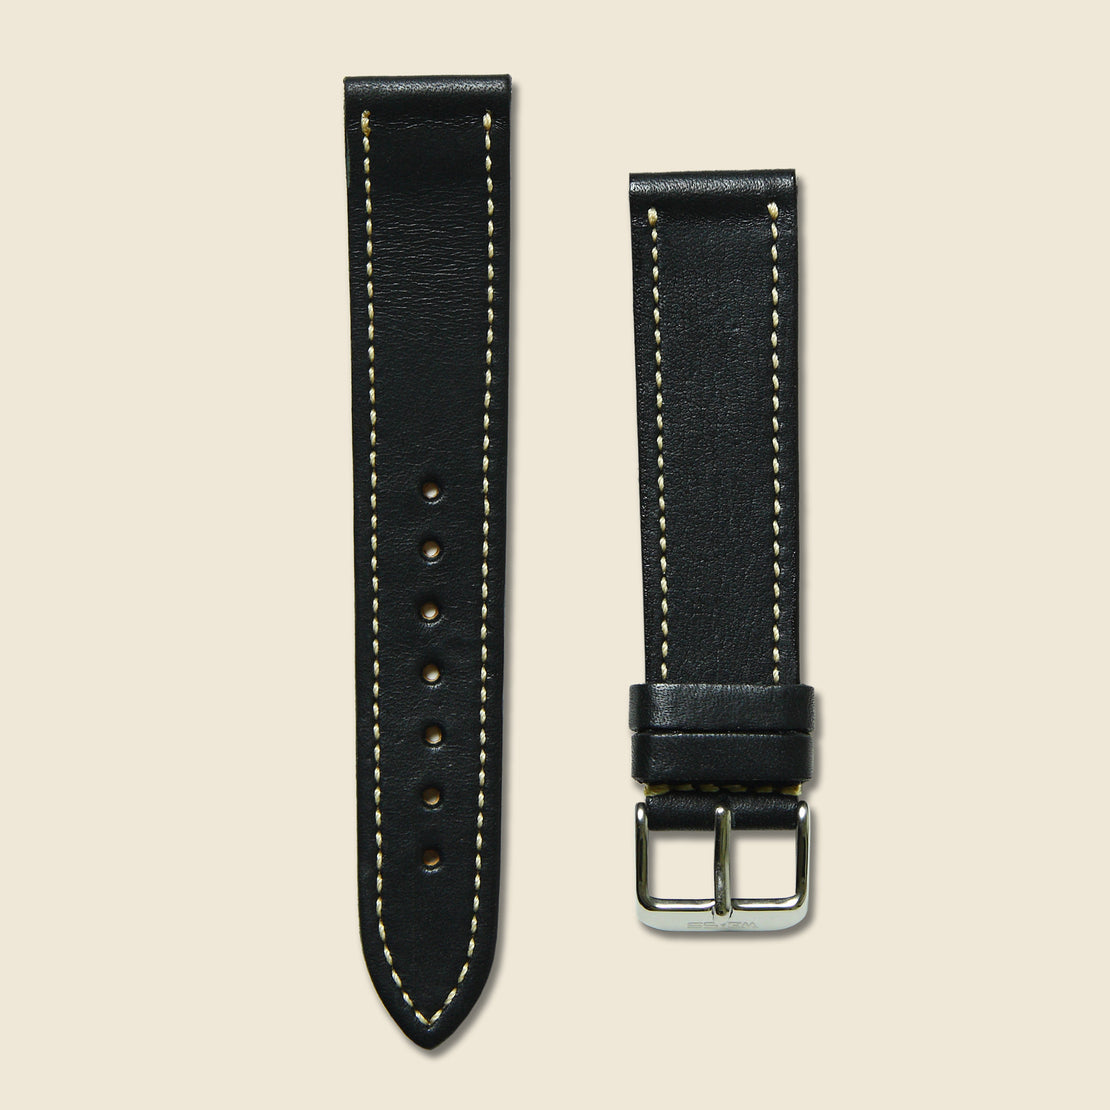 Weiss Watch Co Horween Leather Watch Band - Black